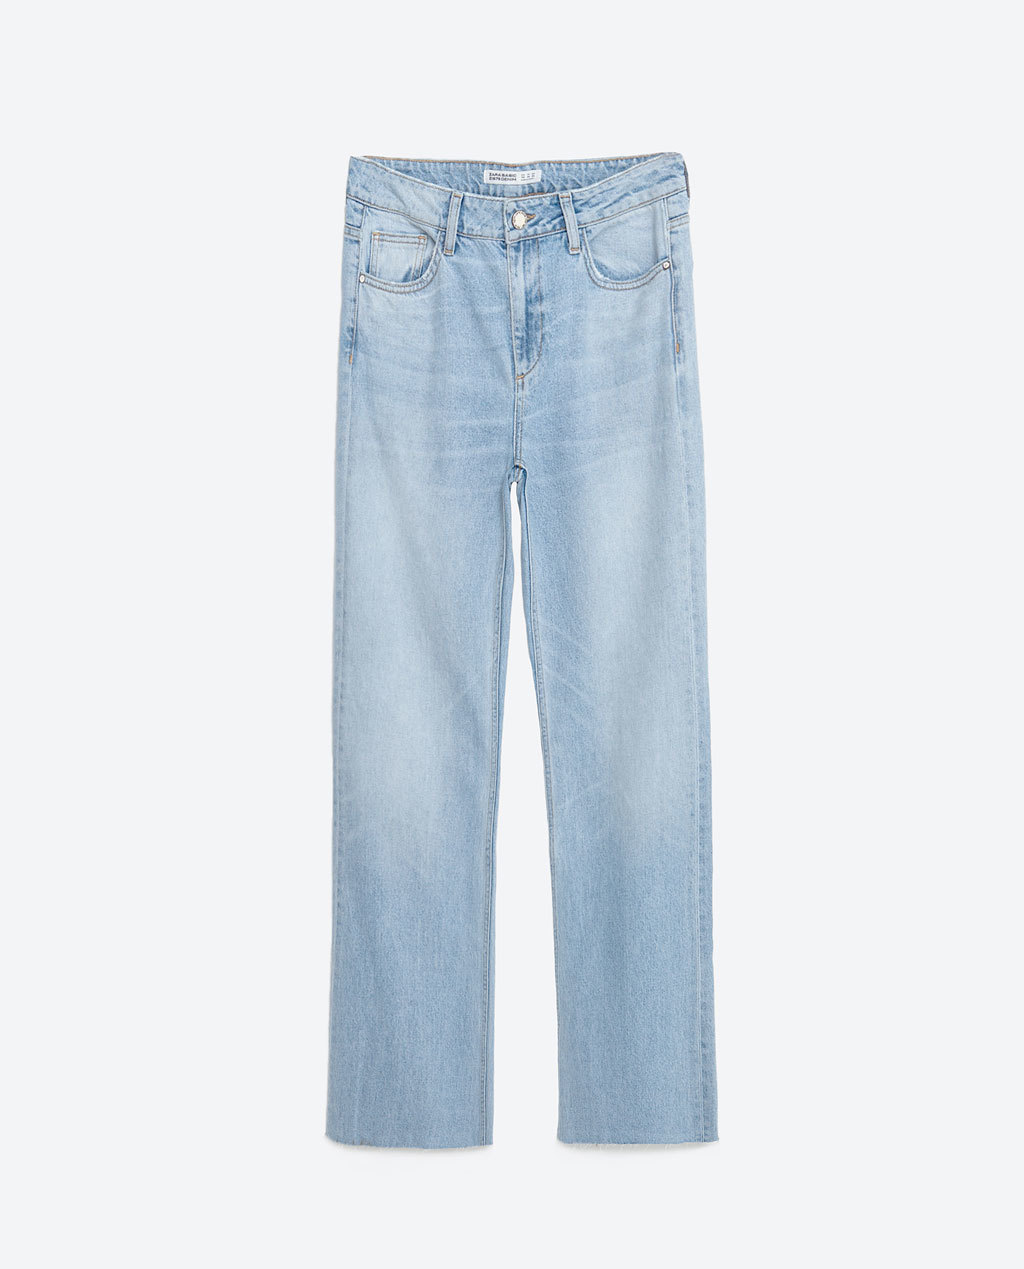 Medium Rise Wide Cut Jeans - length: standard; pattern: plain; pocket detail: traditional 5 pocket; waist: mid/regular rise; style: wide leg; predominant colour: denim; occasions: casual; fibres: cotton - stretch; texture group: denim; pattern type: fabric; season: s/s 2016; wardrobe: basic